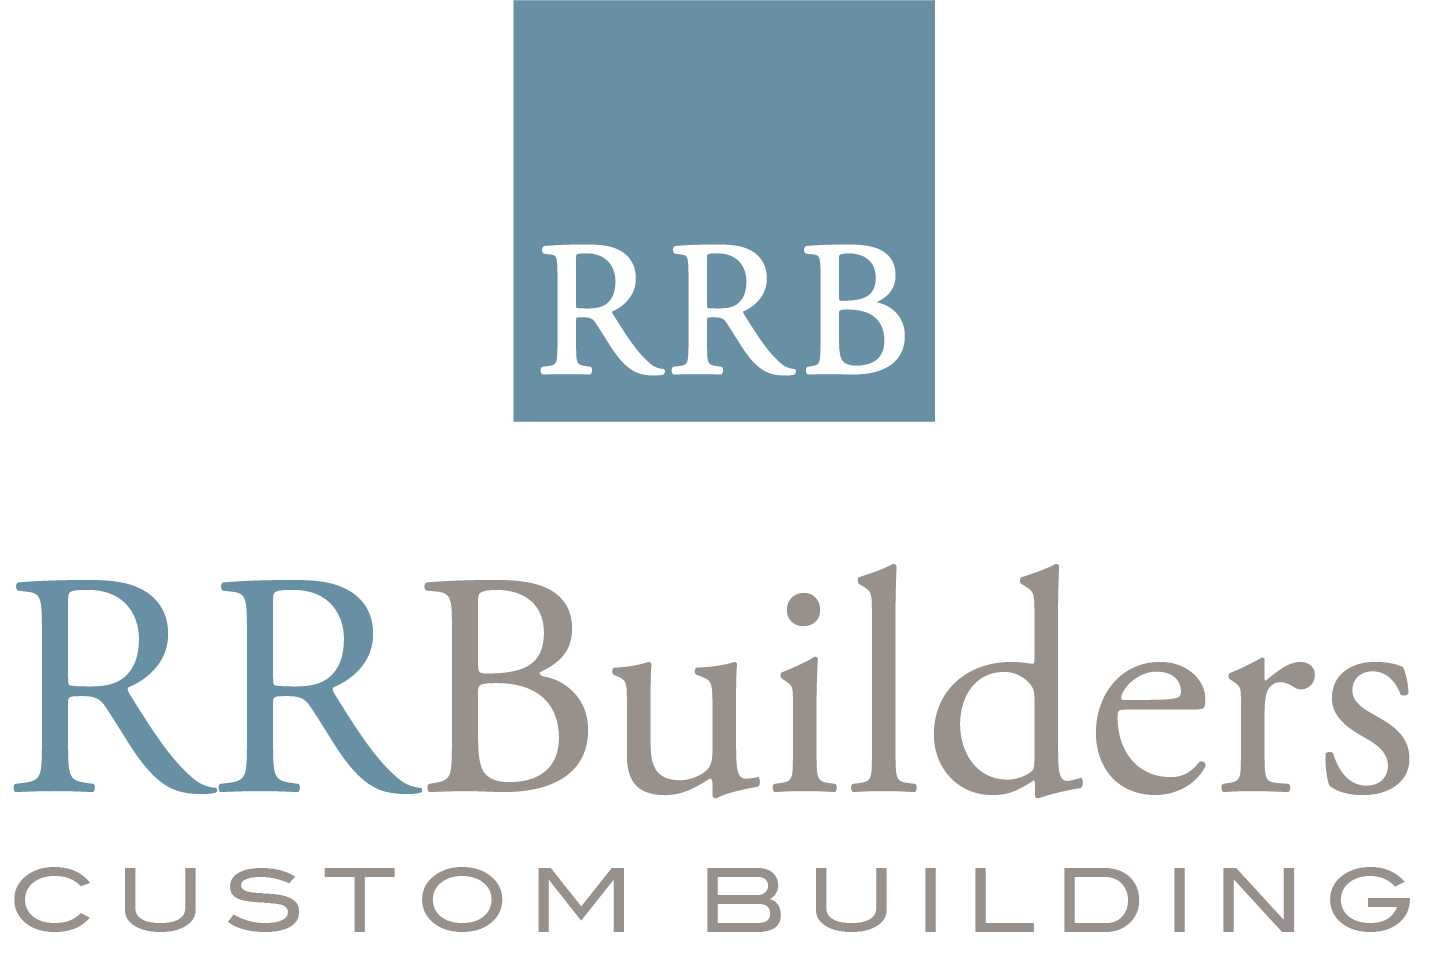 RRB FINAL LOGO STACKED.png